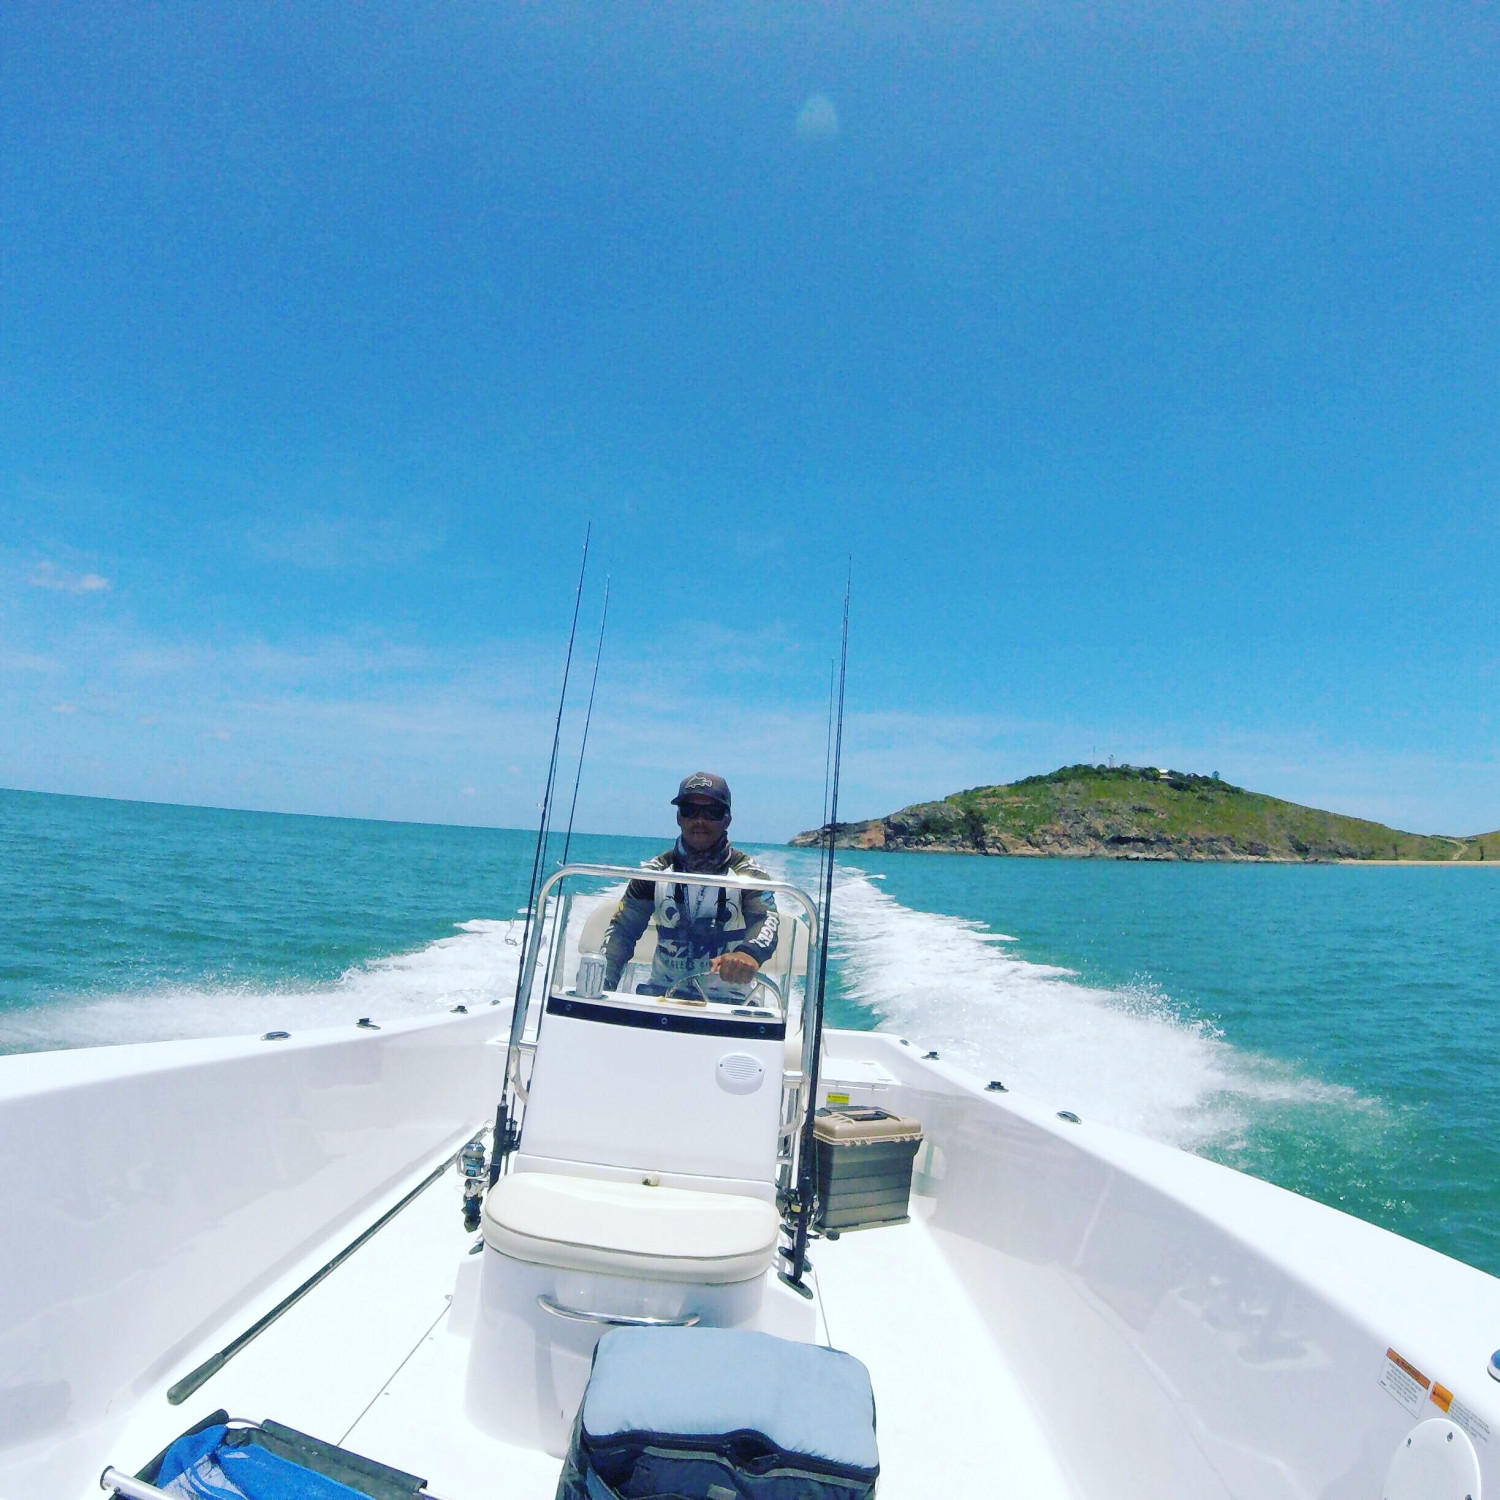 Title: Letting the horses fly! - On board their Sportsman Island Reef 19 Center Console - Location: Townsville North Queensland Australia. Participating in the Photo Contest #SportsmanMarch2018